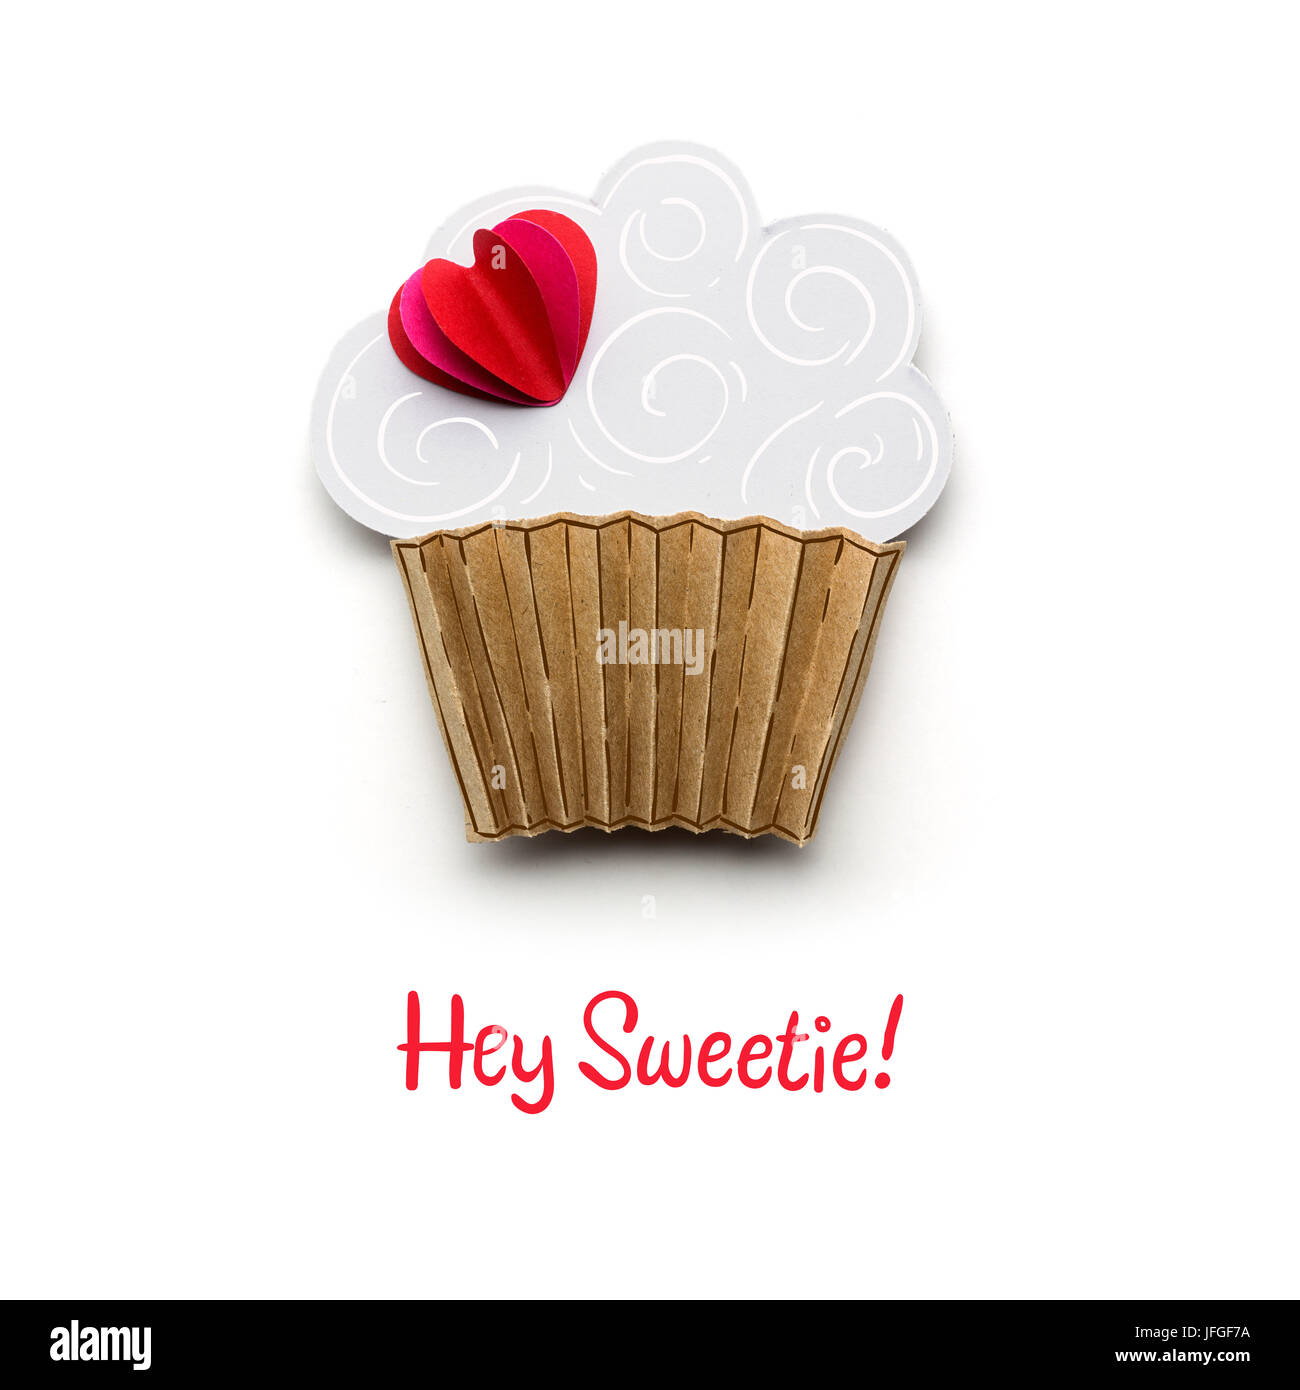 Hey sweetie. - Stock Image